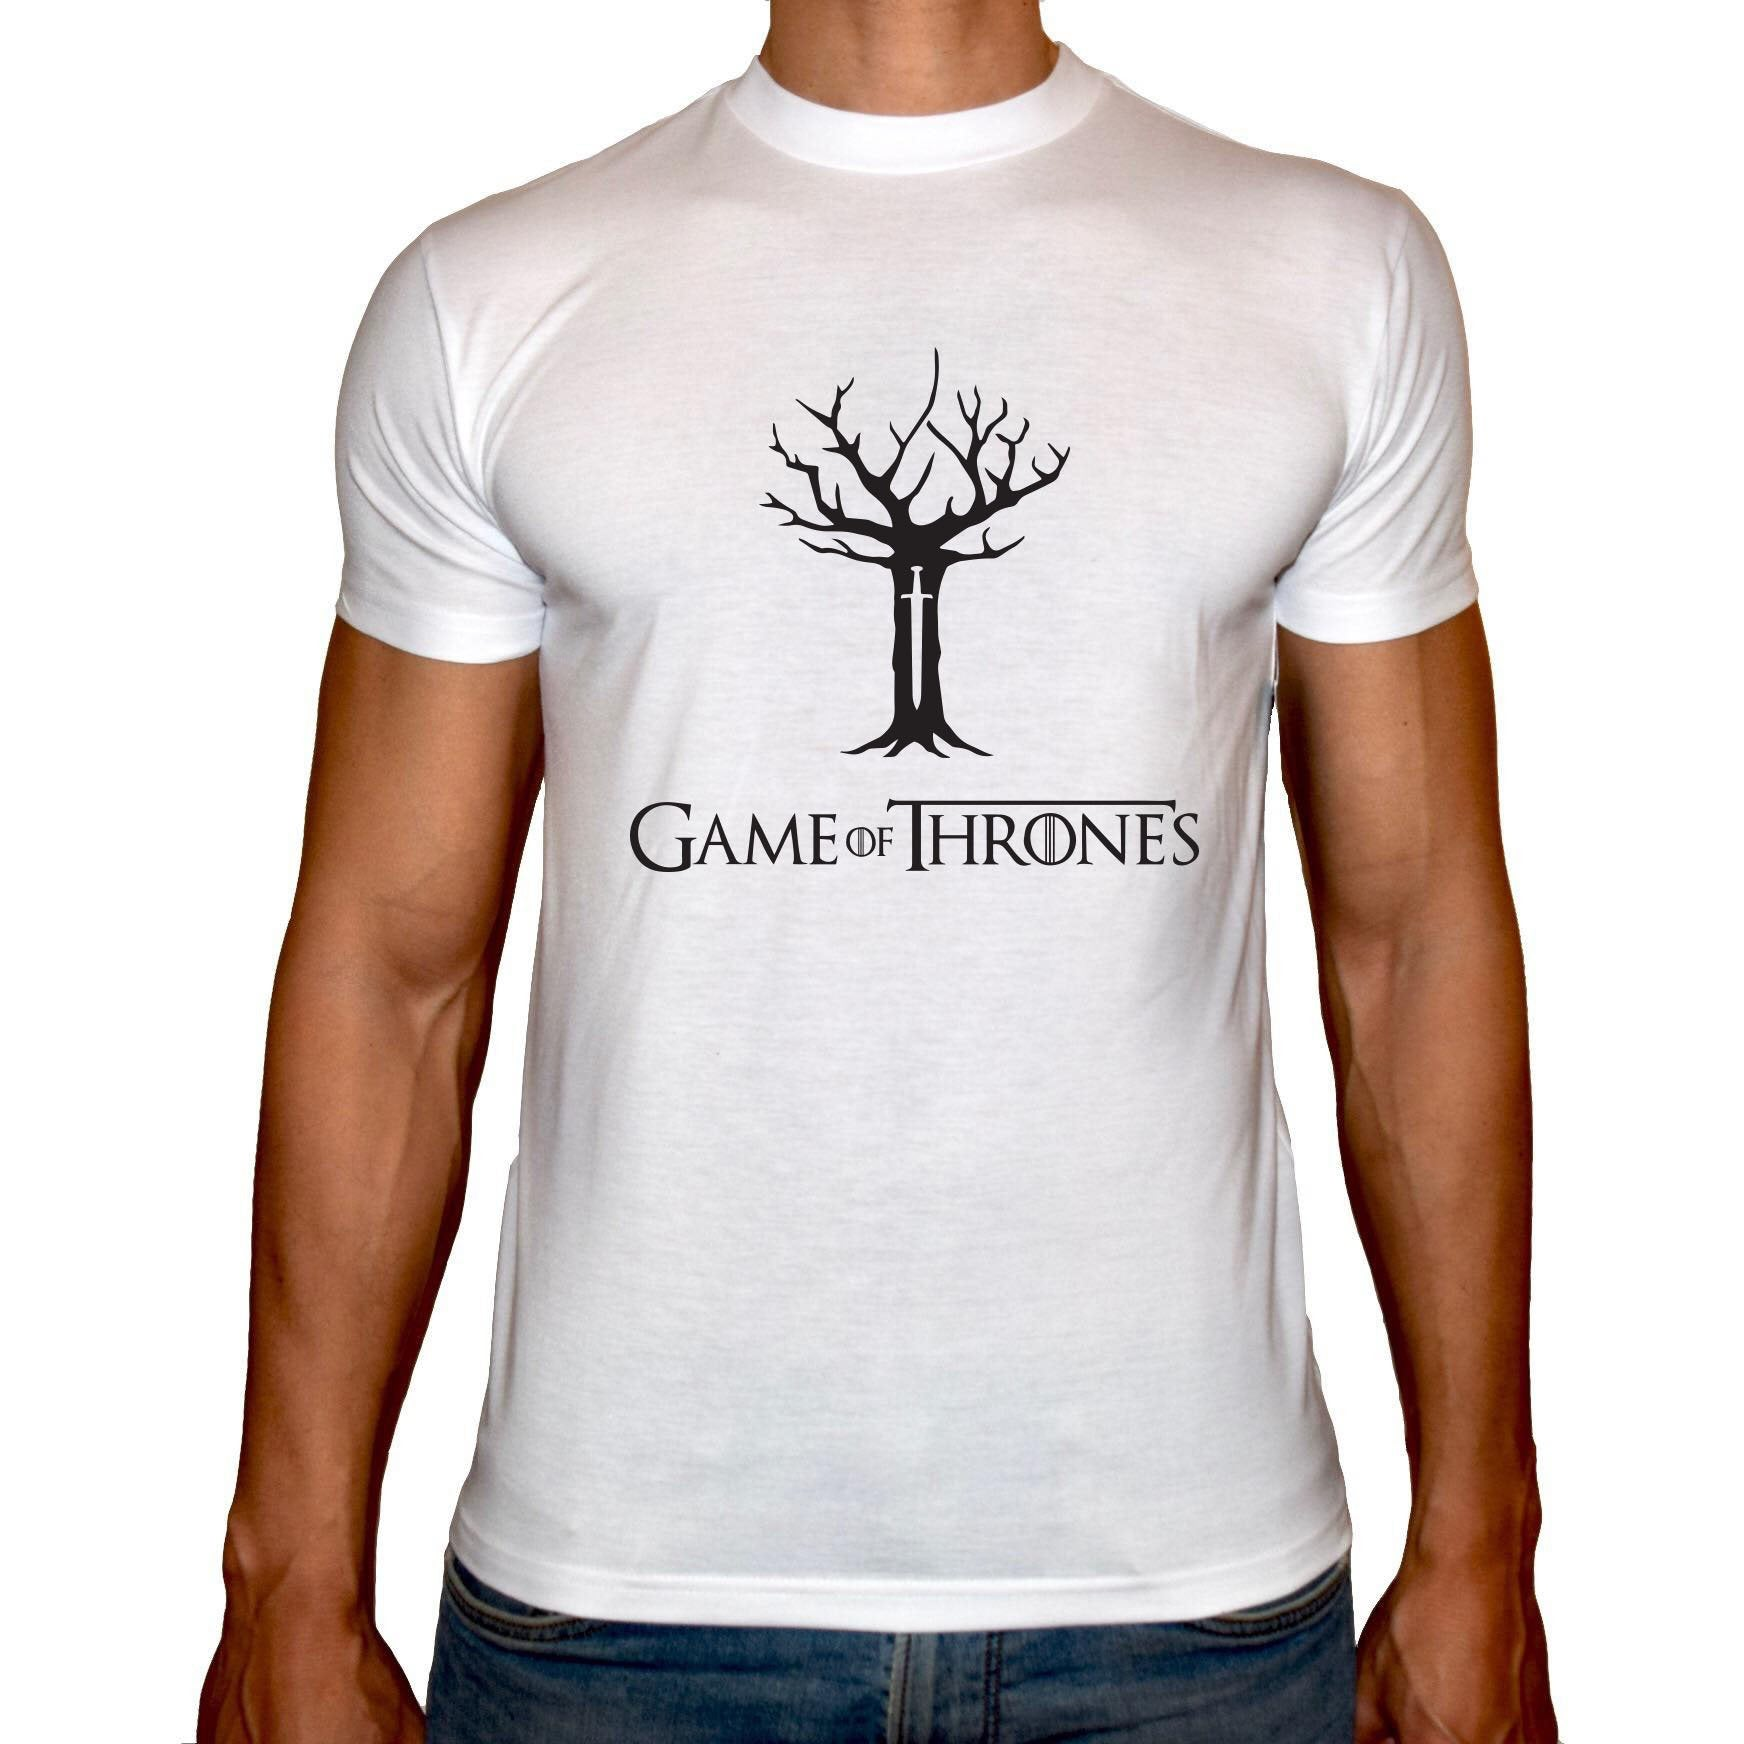 Phoenix WHITE Round Neck Printed T-Shirt Men (Game of thrones - Tree vector)